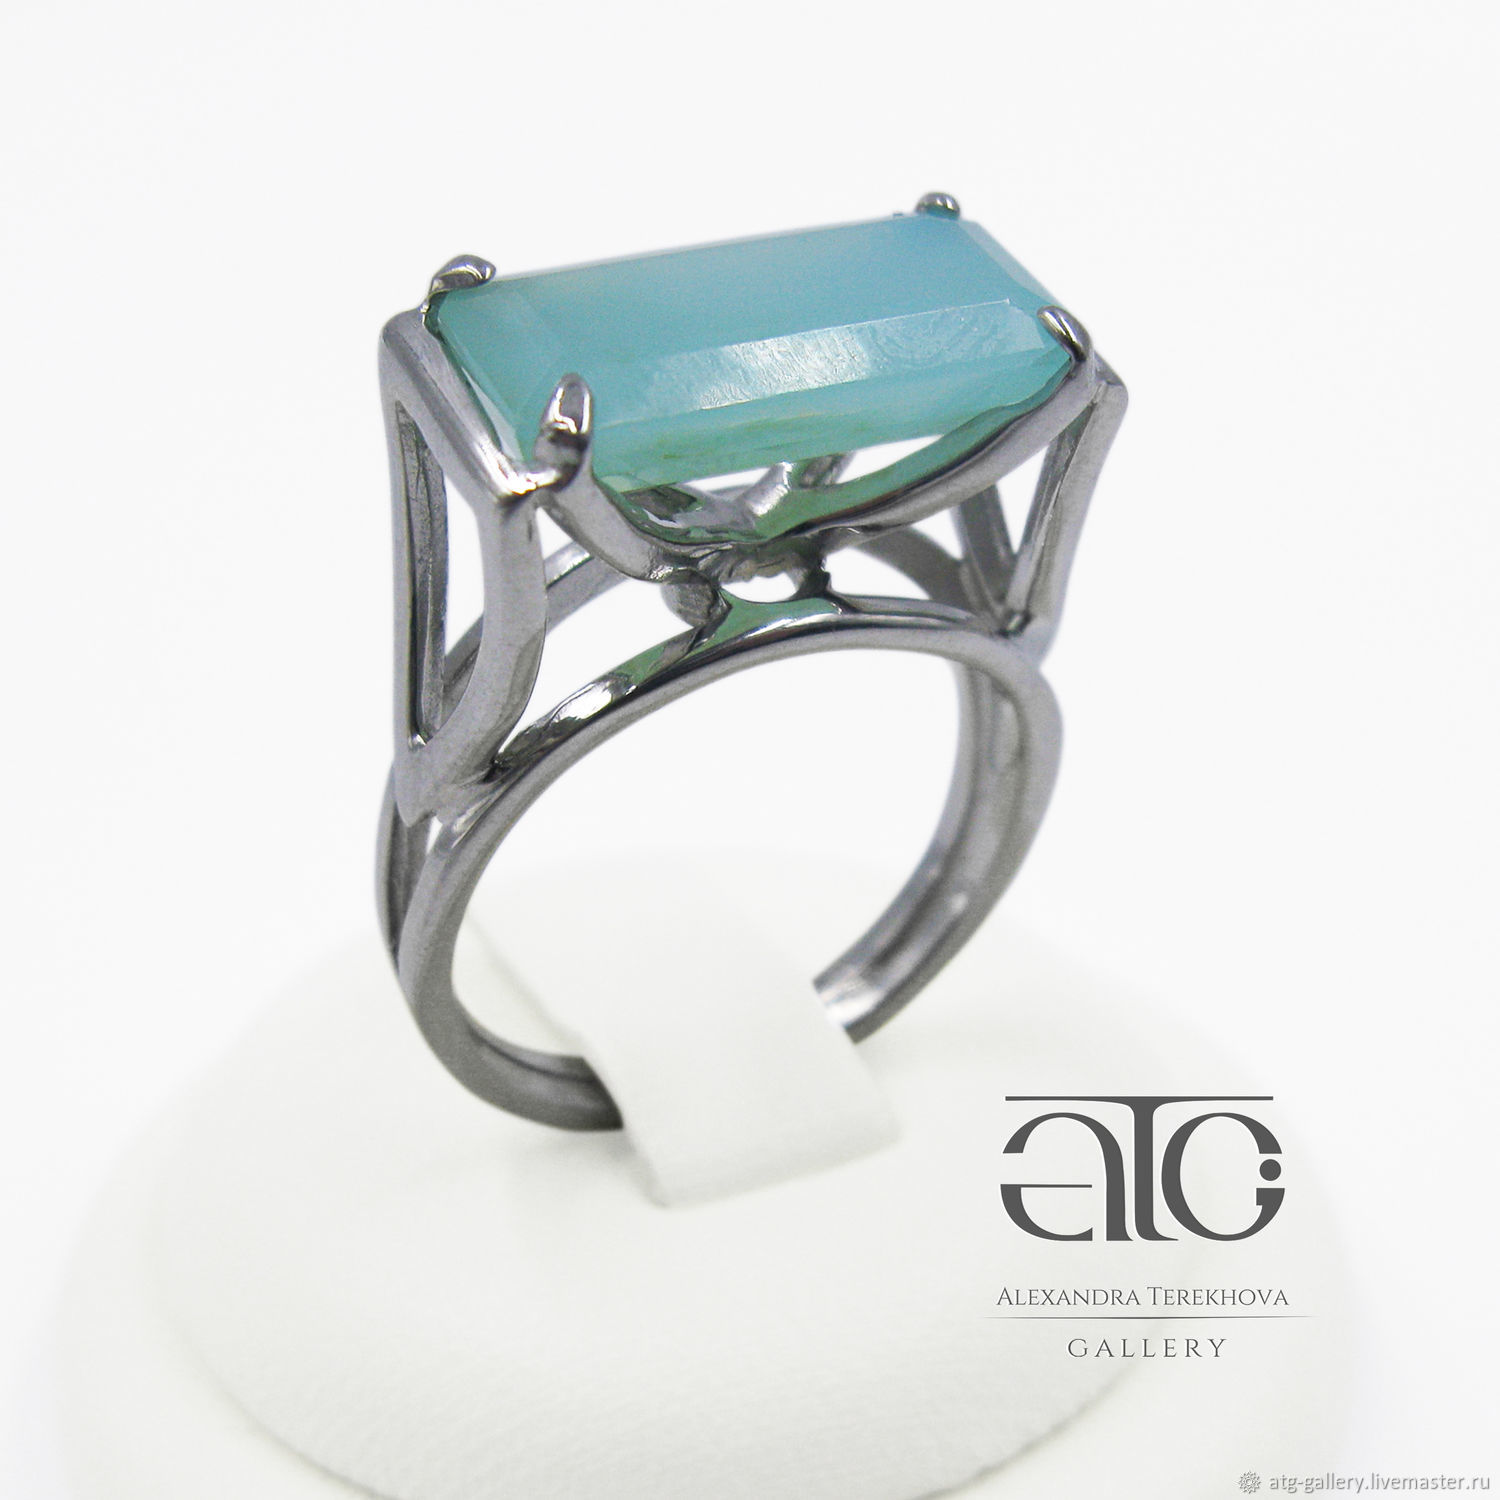 THE ONLY INSTANCE! Ring with Peruvian opal Paraiba 3.70 Carat! A beautiful decoration for every day!